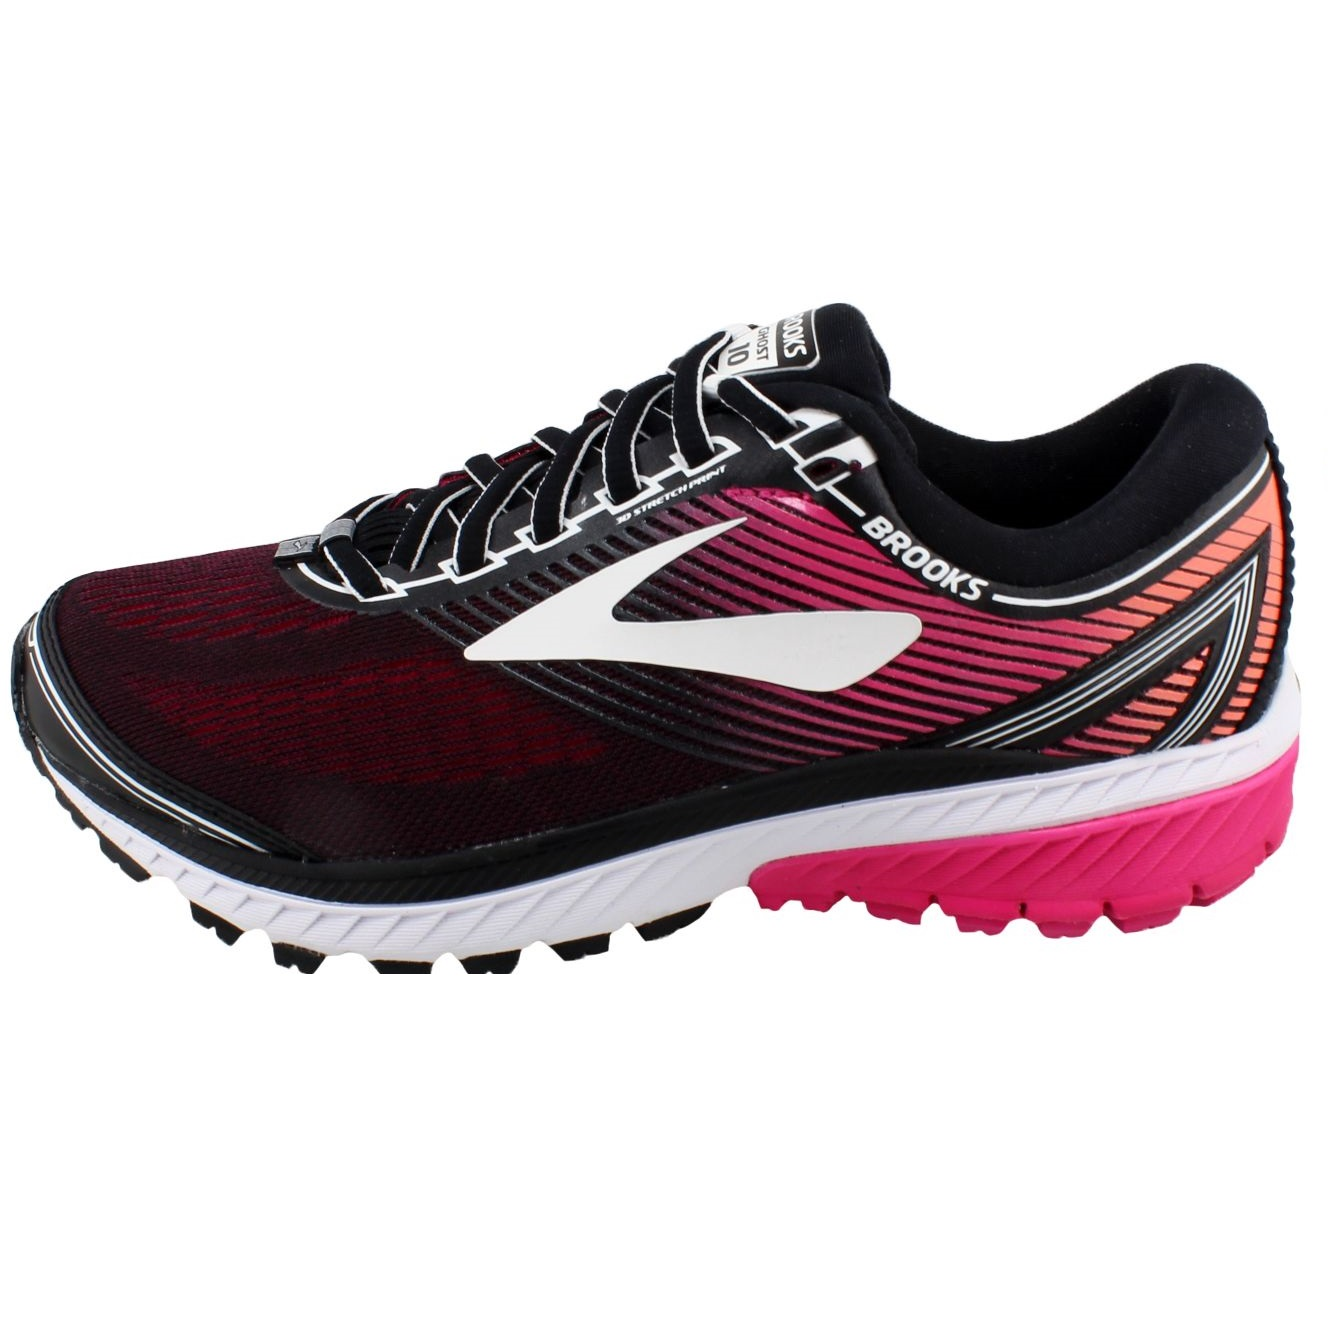 13006bfc17a1 Details about Brooks Ghost 10 Womens Neutral Running Shoes, Black/Pink